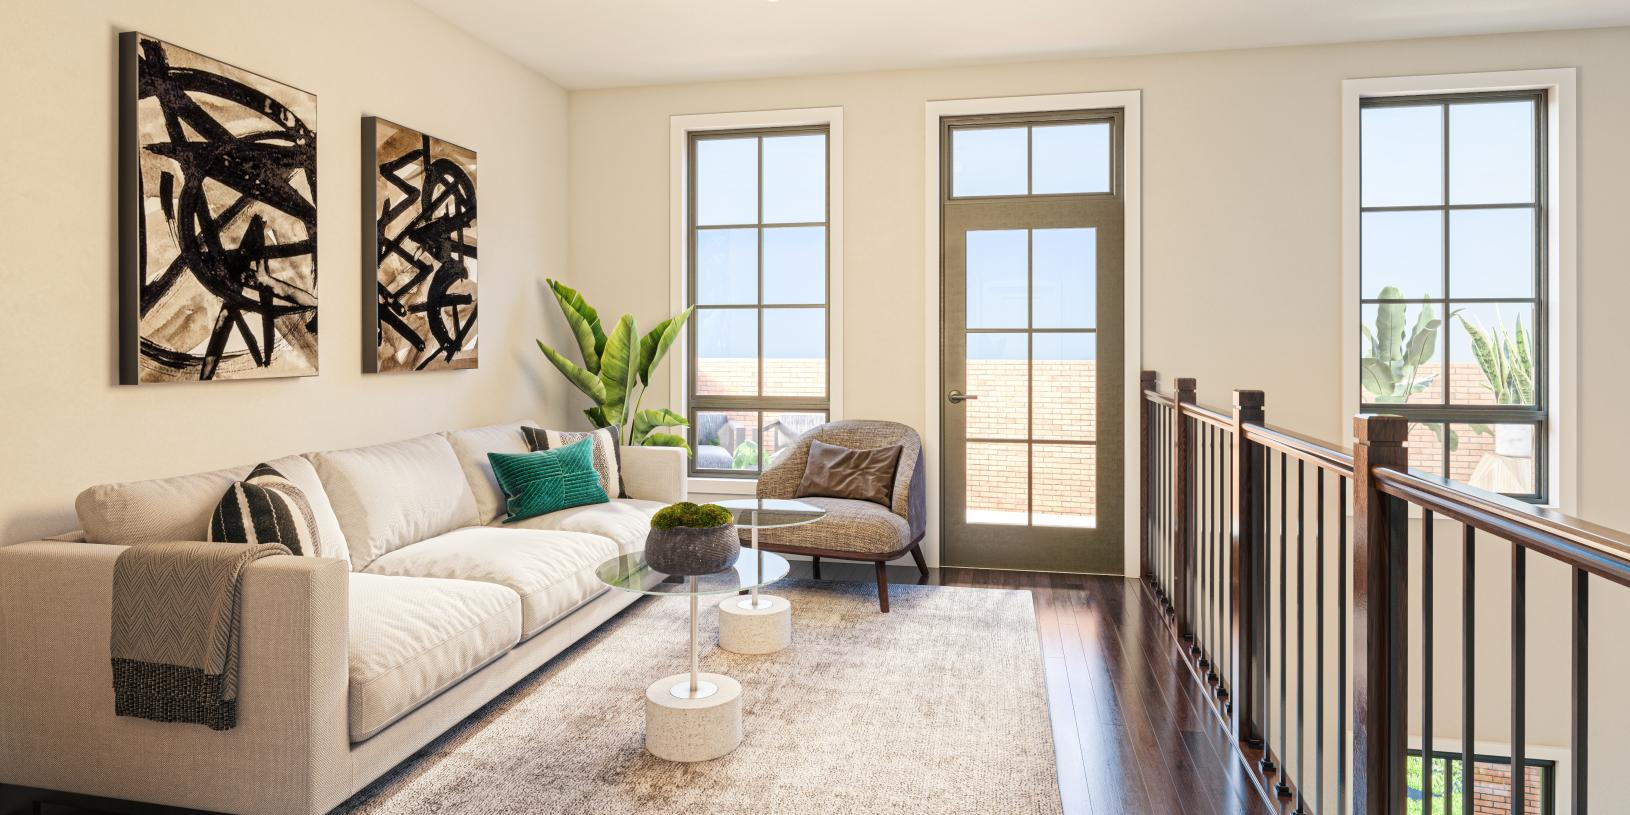 Upper level loft perfect for a secondary living area or cozy home office space